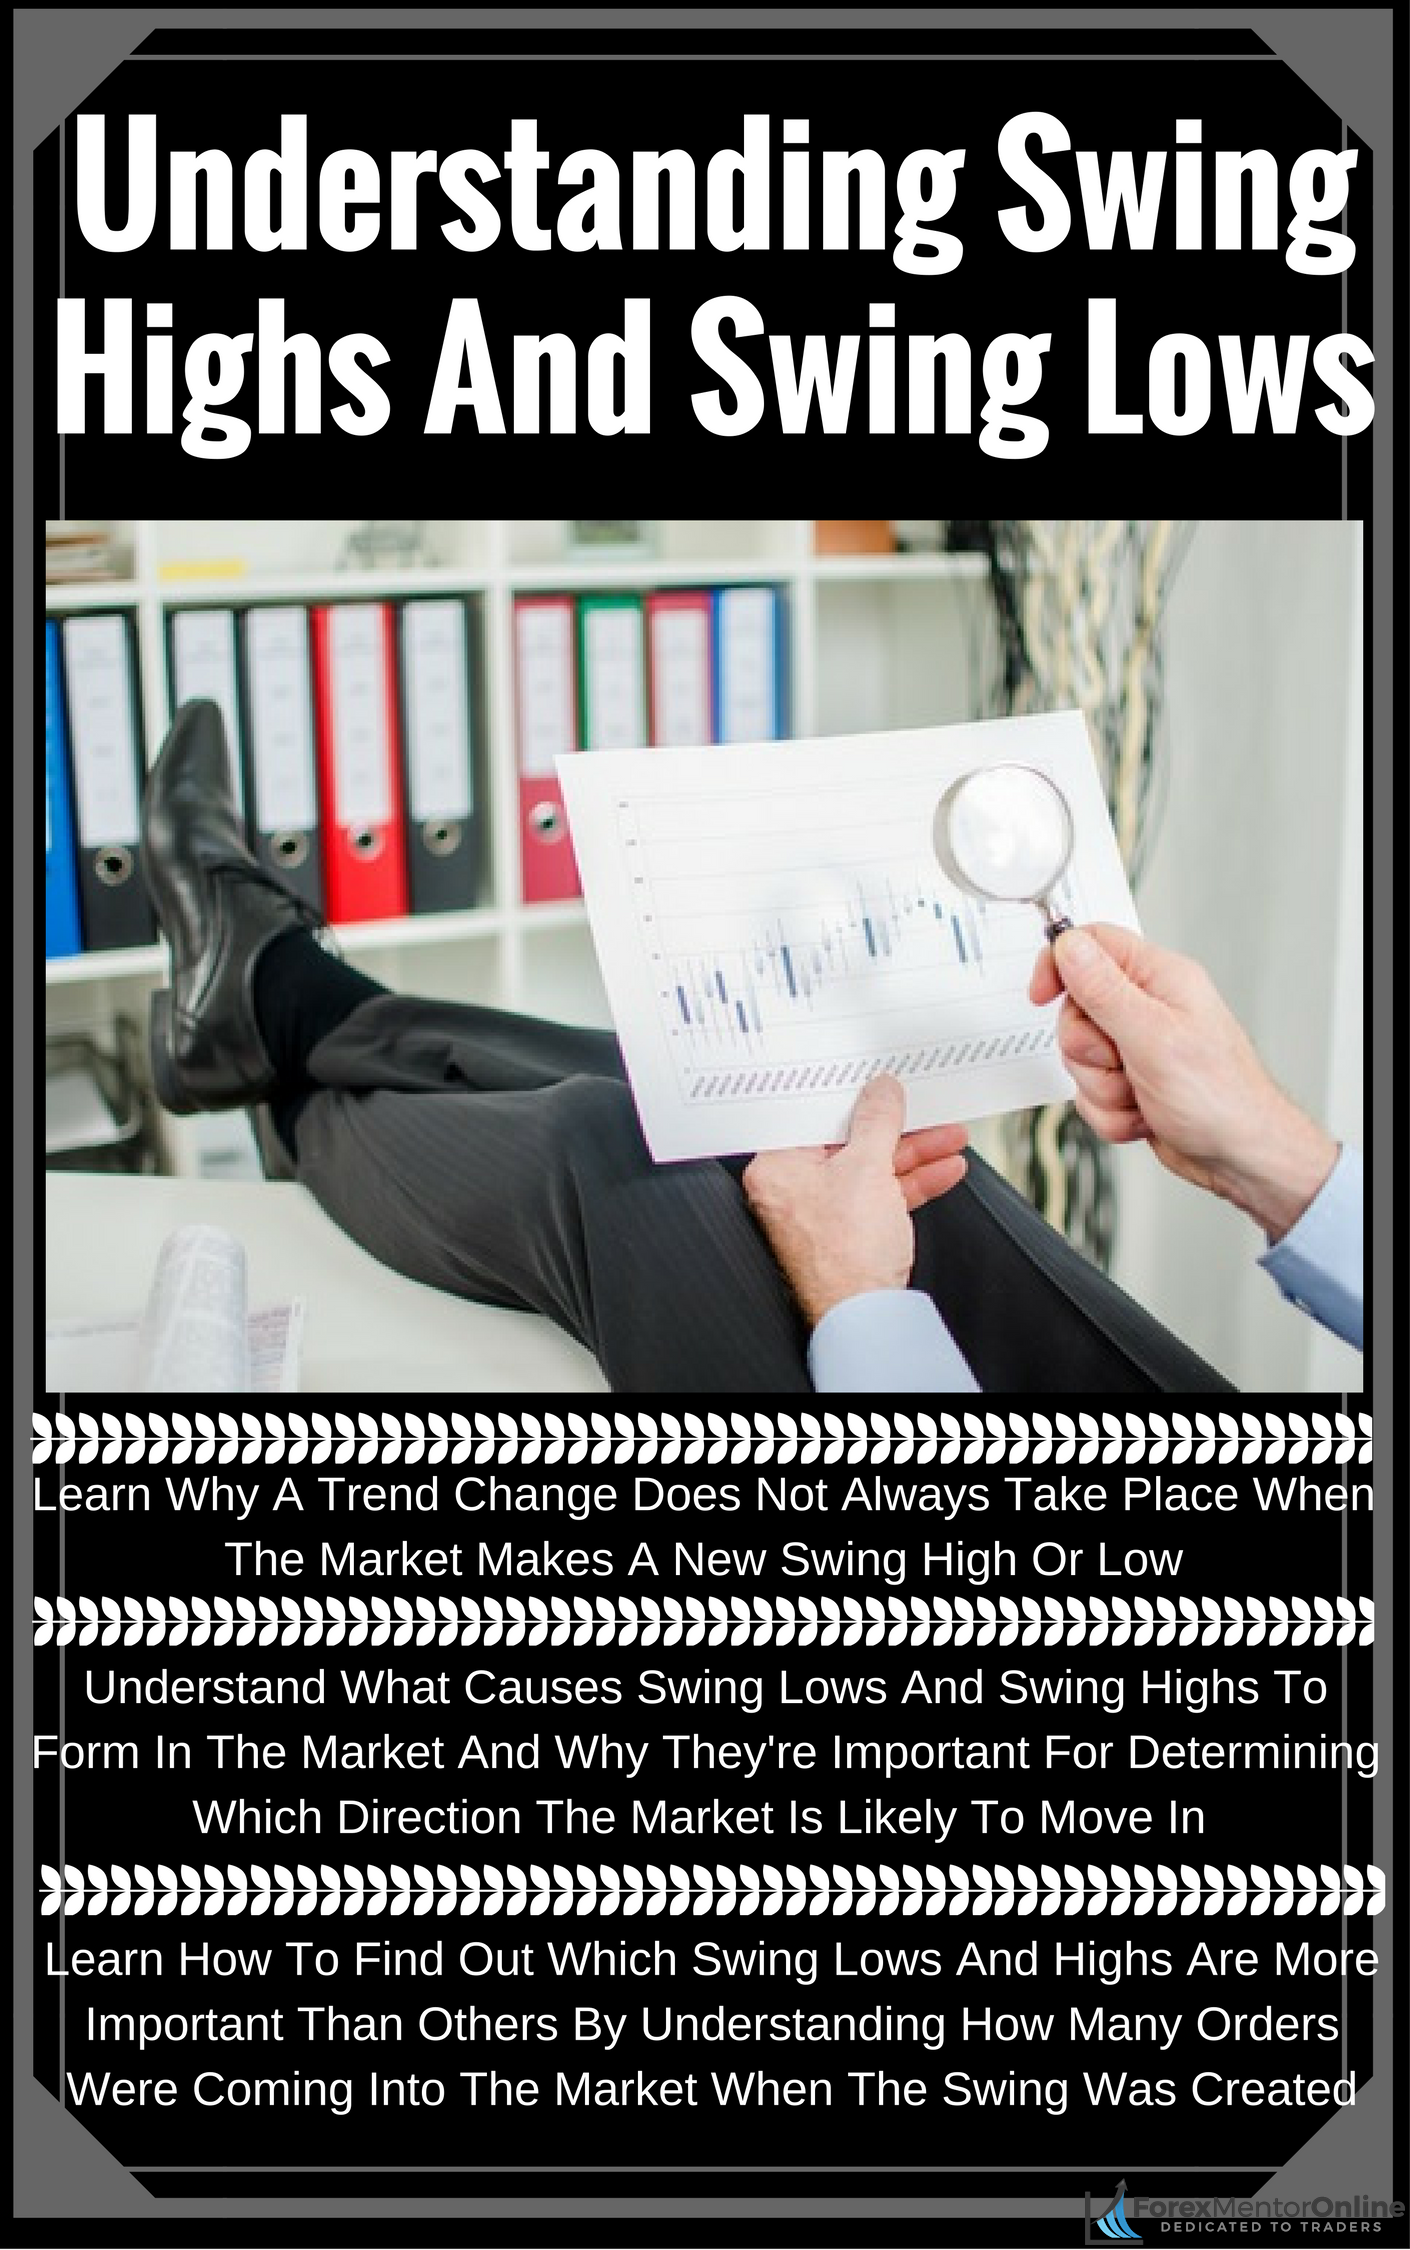 understanding-swing-highs-and-swing-lows